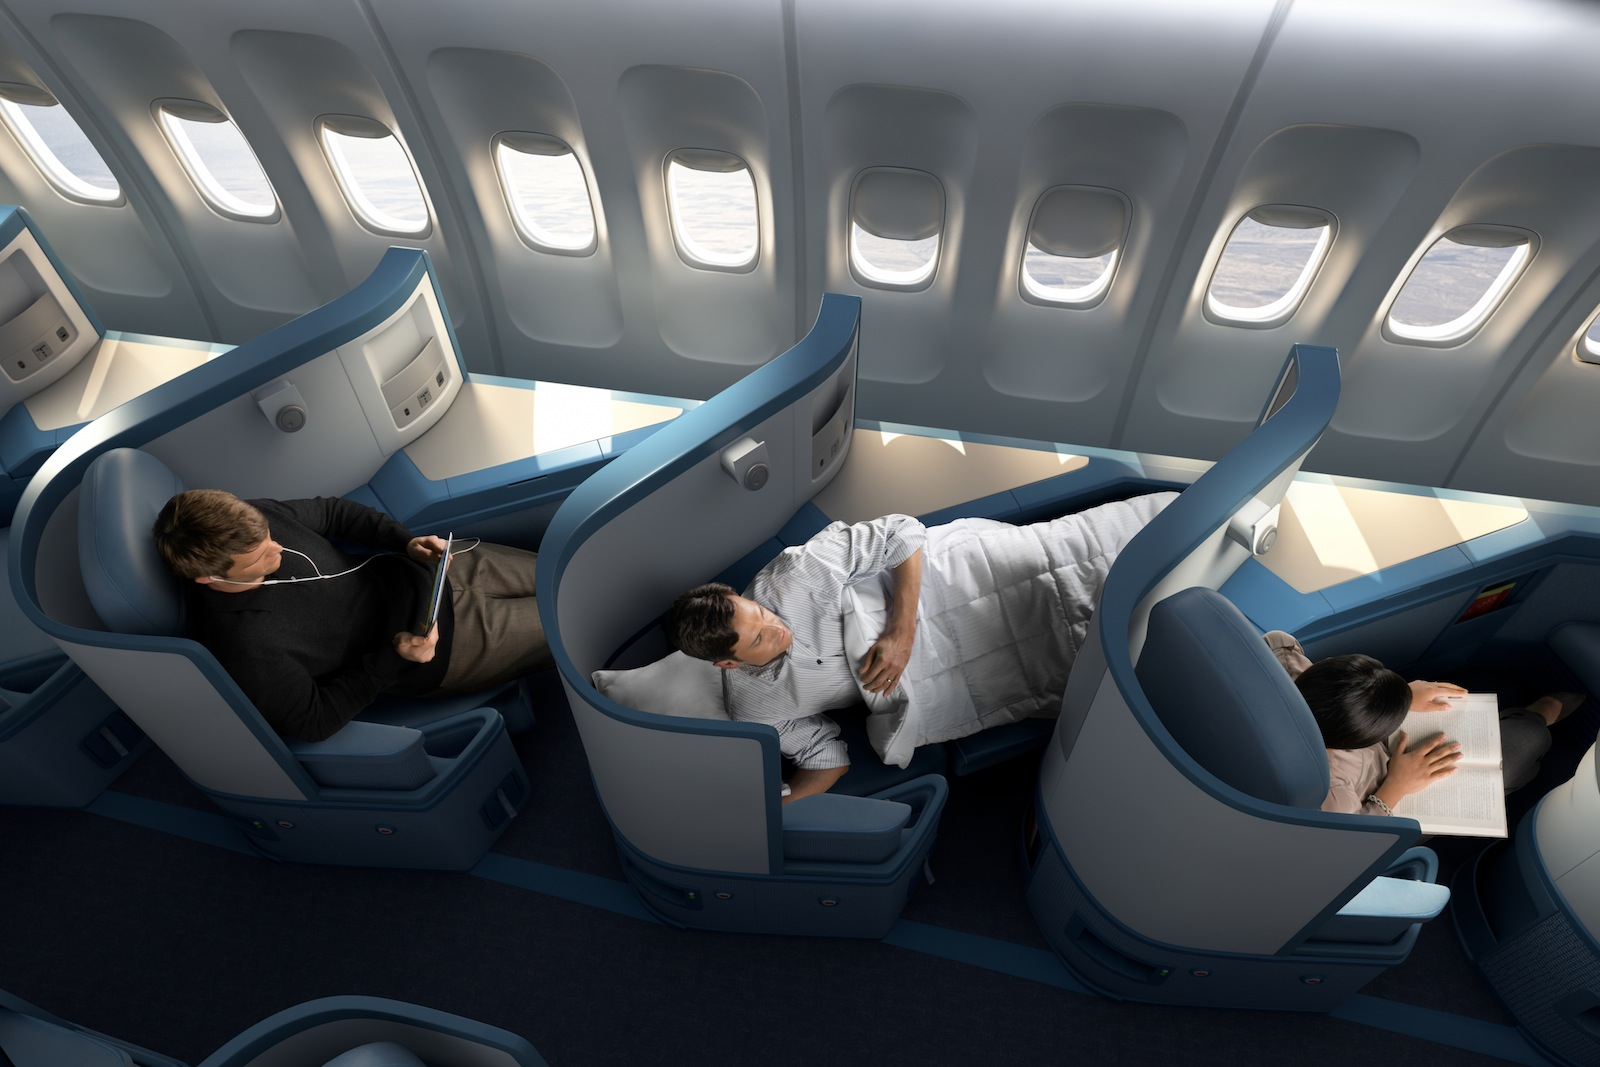 Delta completes full flat-bed seats installation on all ...